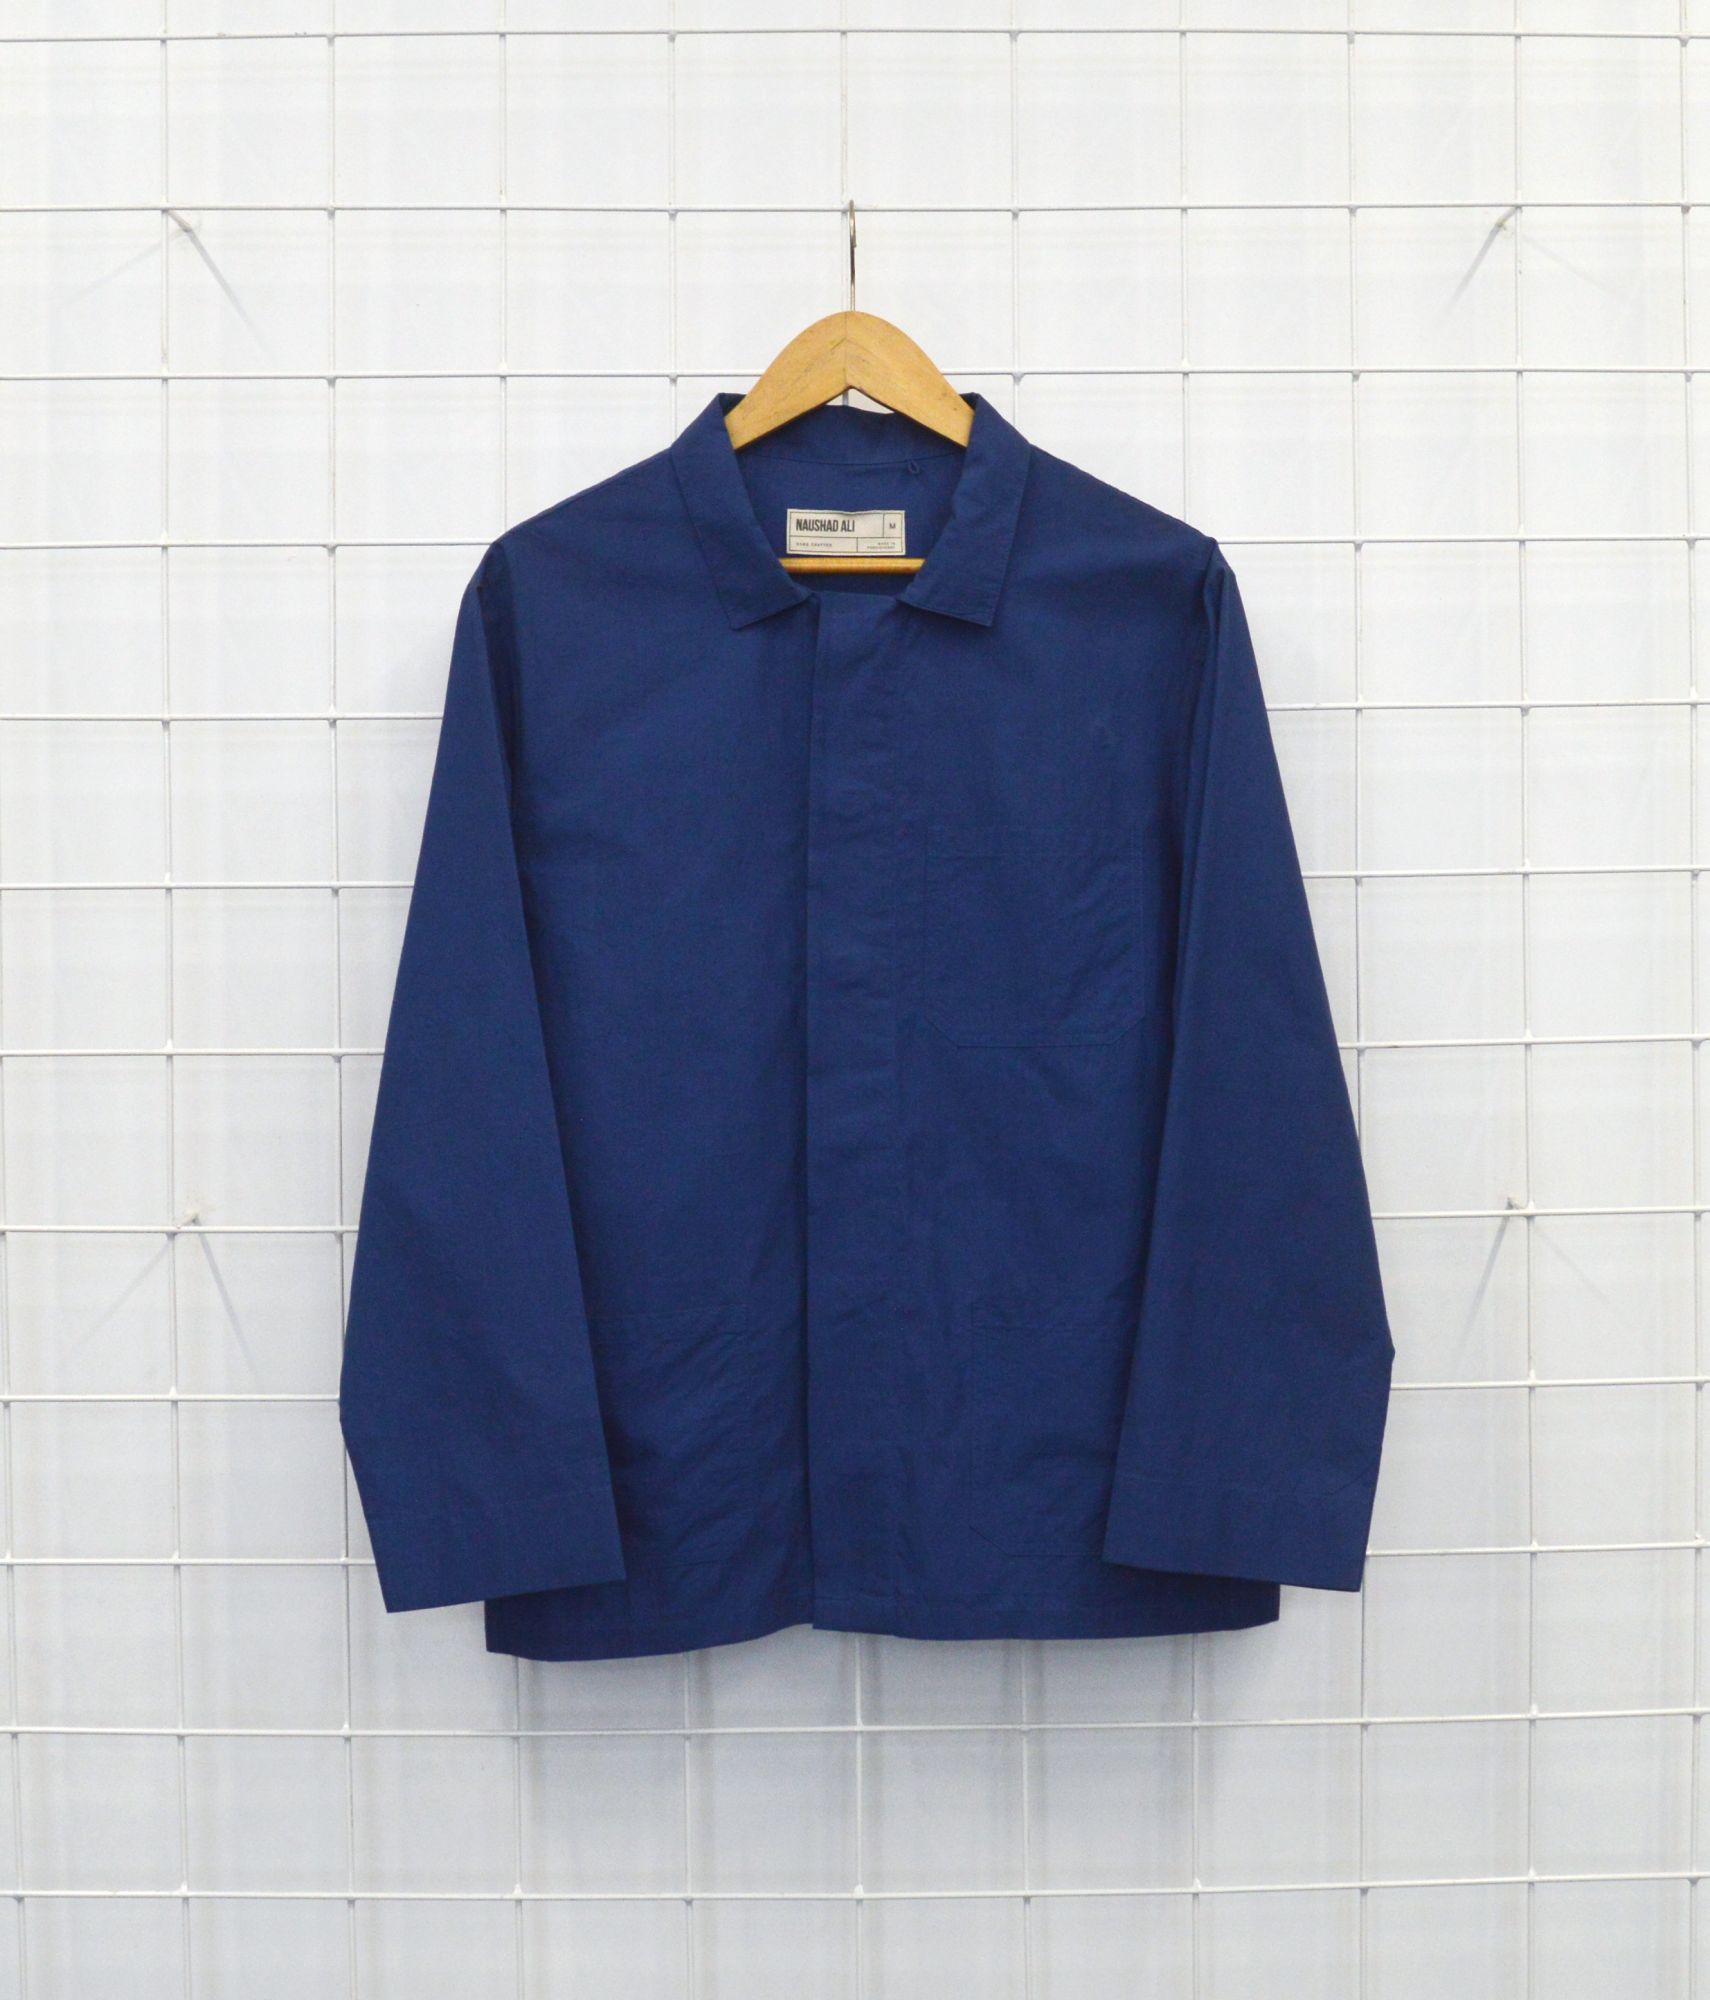 Vintage Shirt/Jacket - Electric Blue